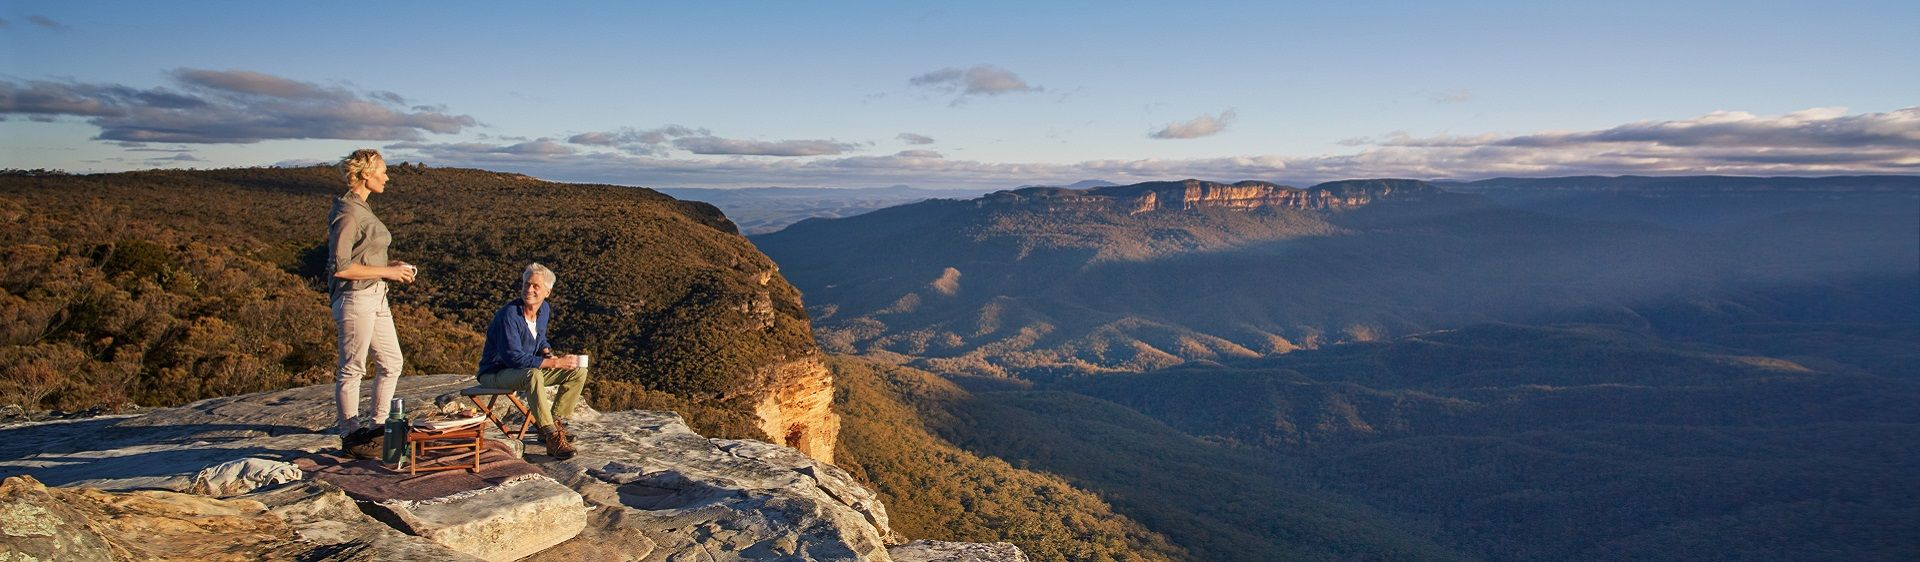 Sun rise over the Blue Mountains National Park